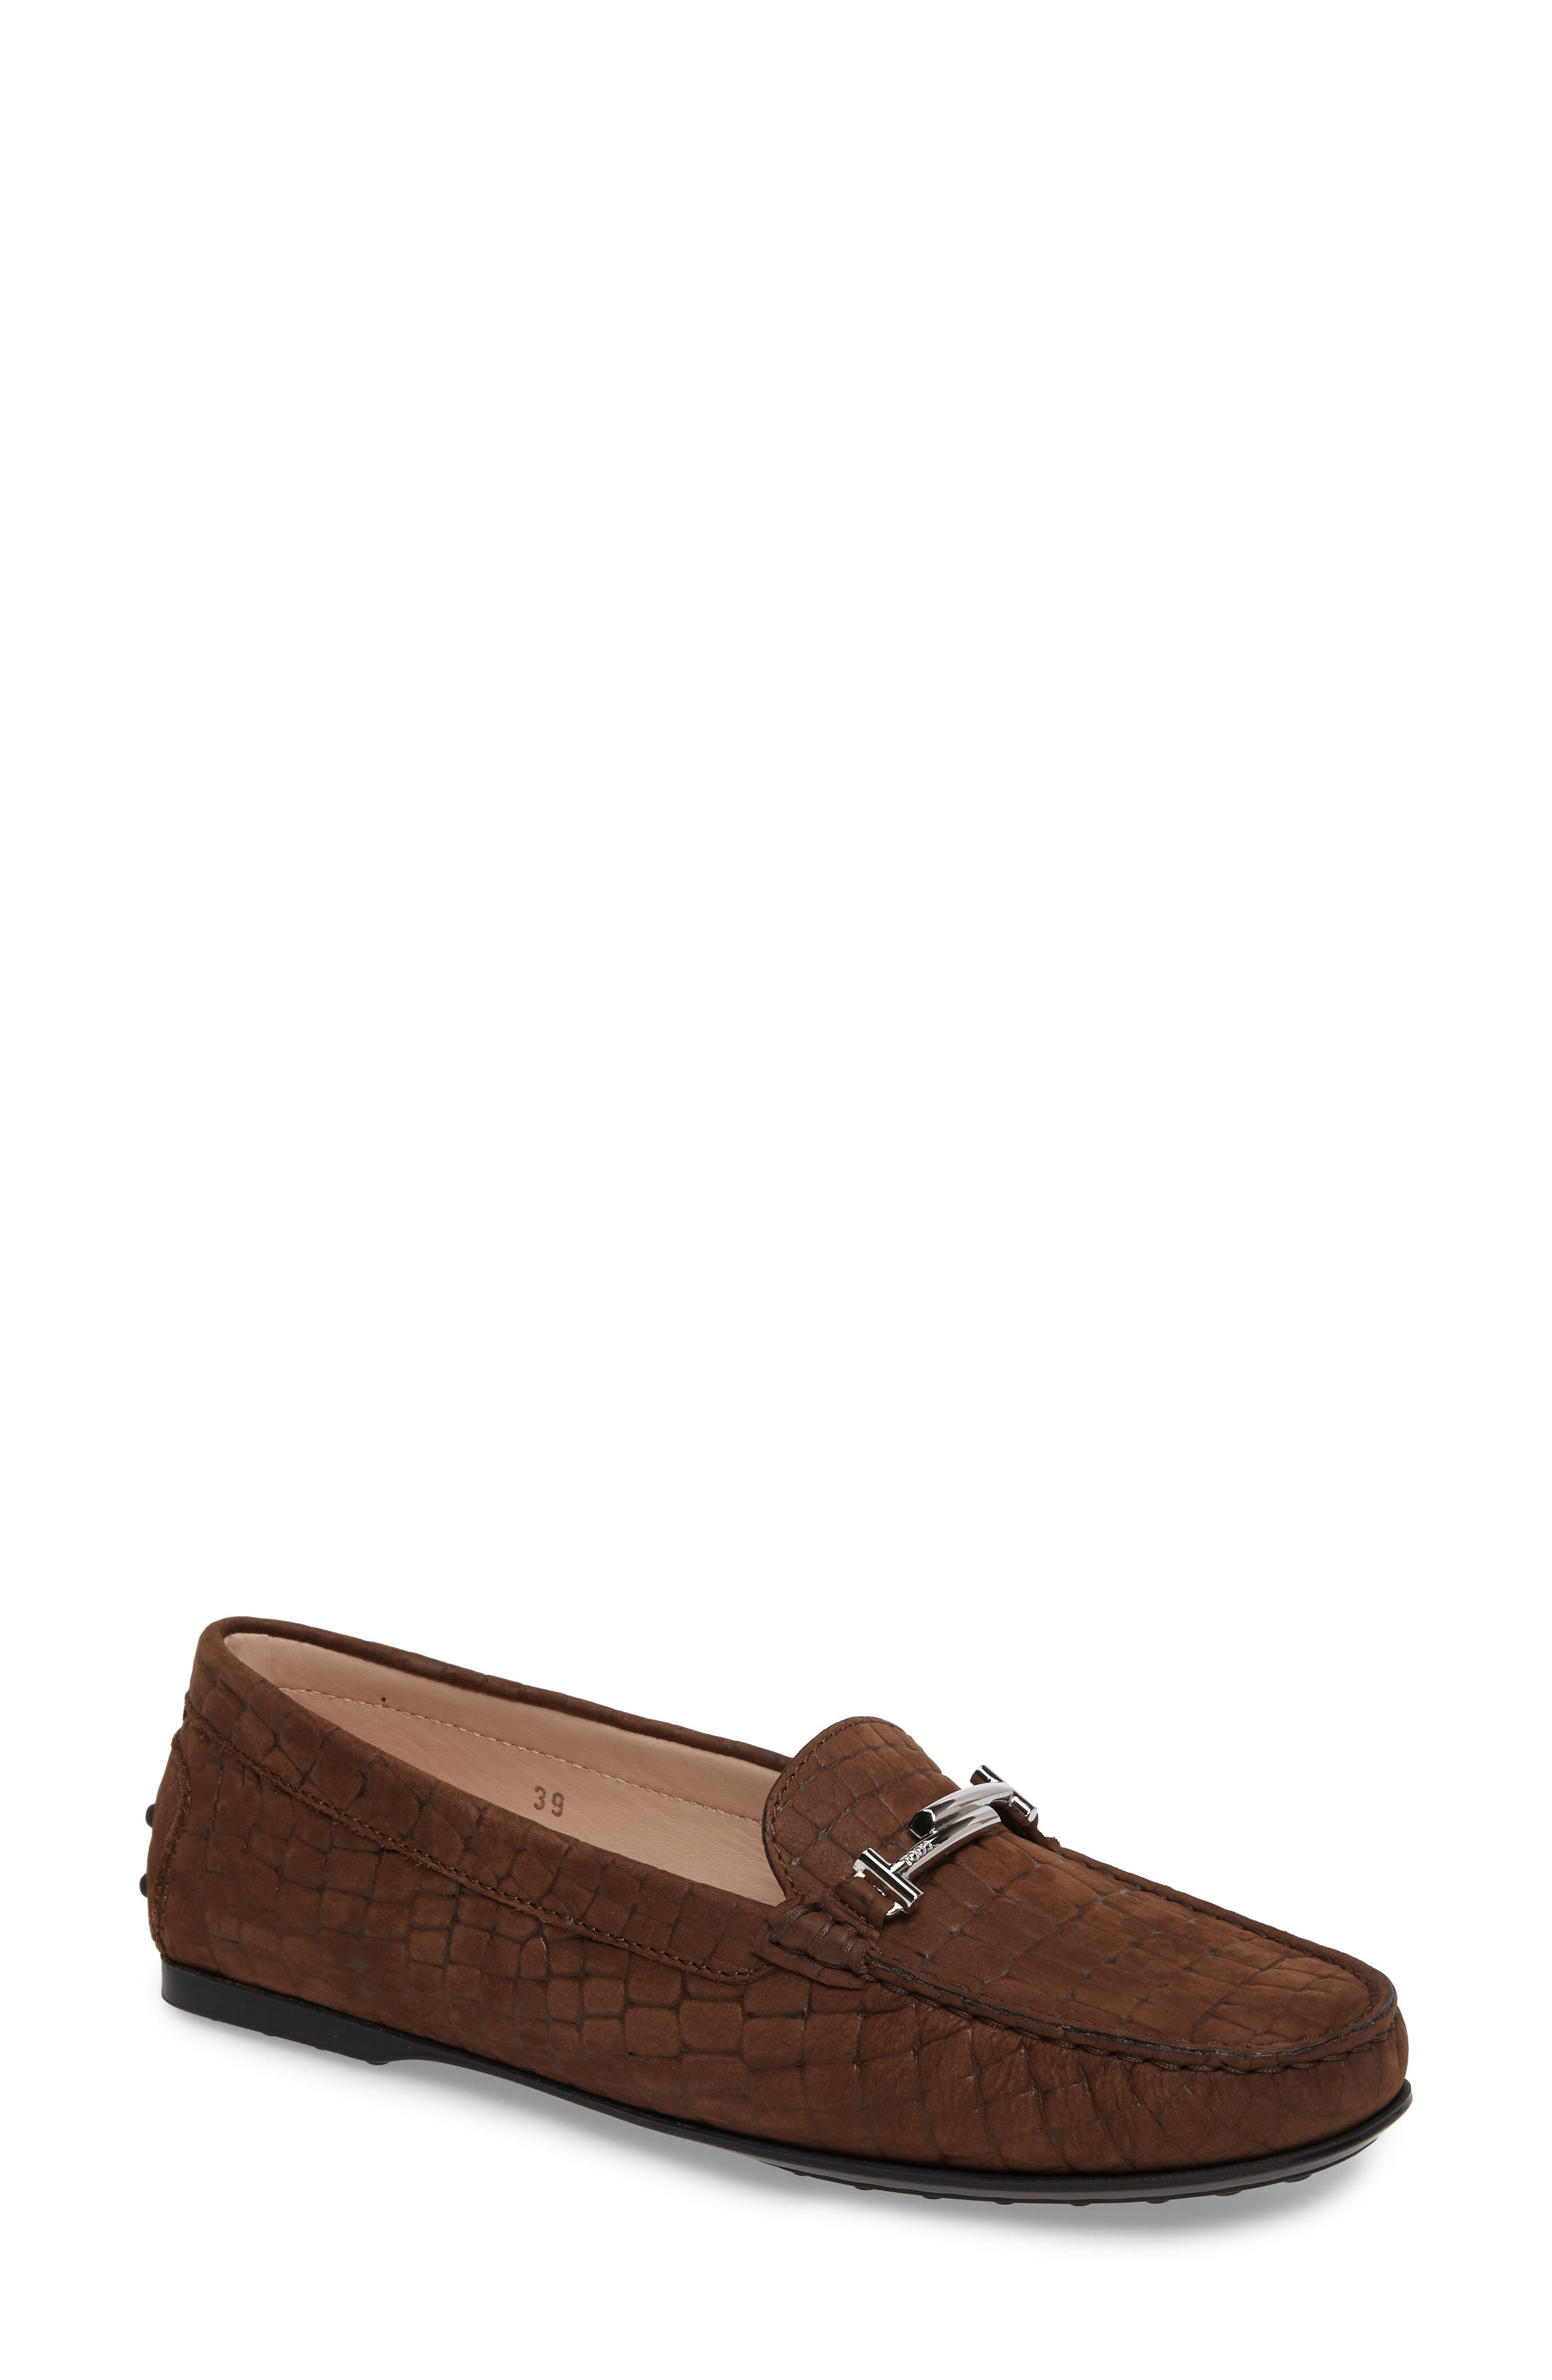 Tods Croc Embossed Double T Loafer,                         Main,                         color, 249